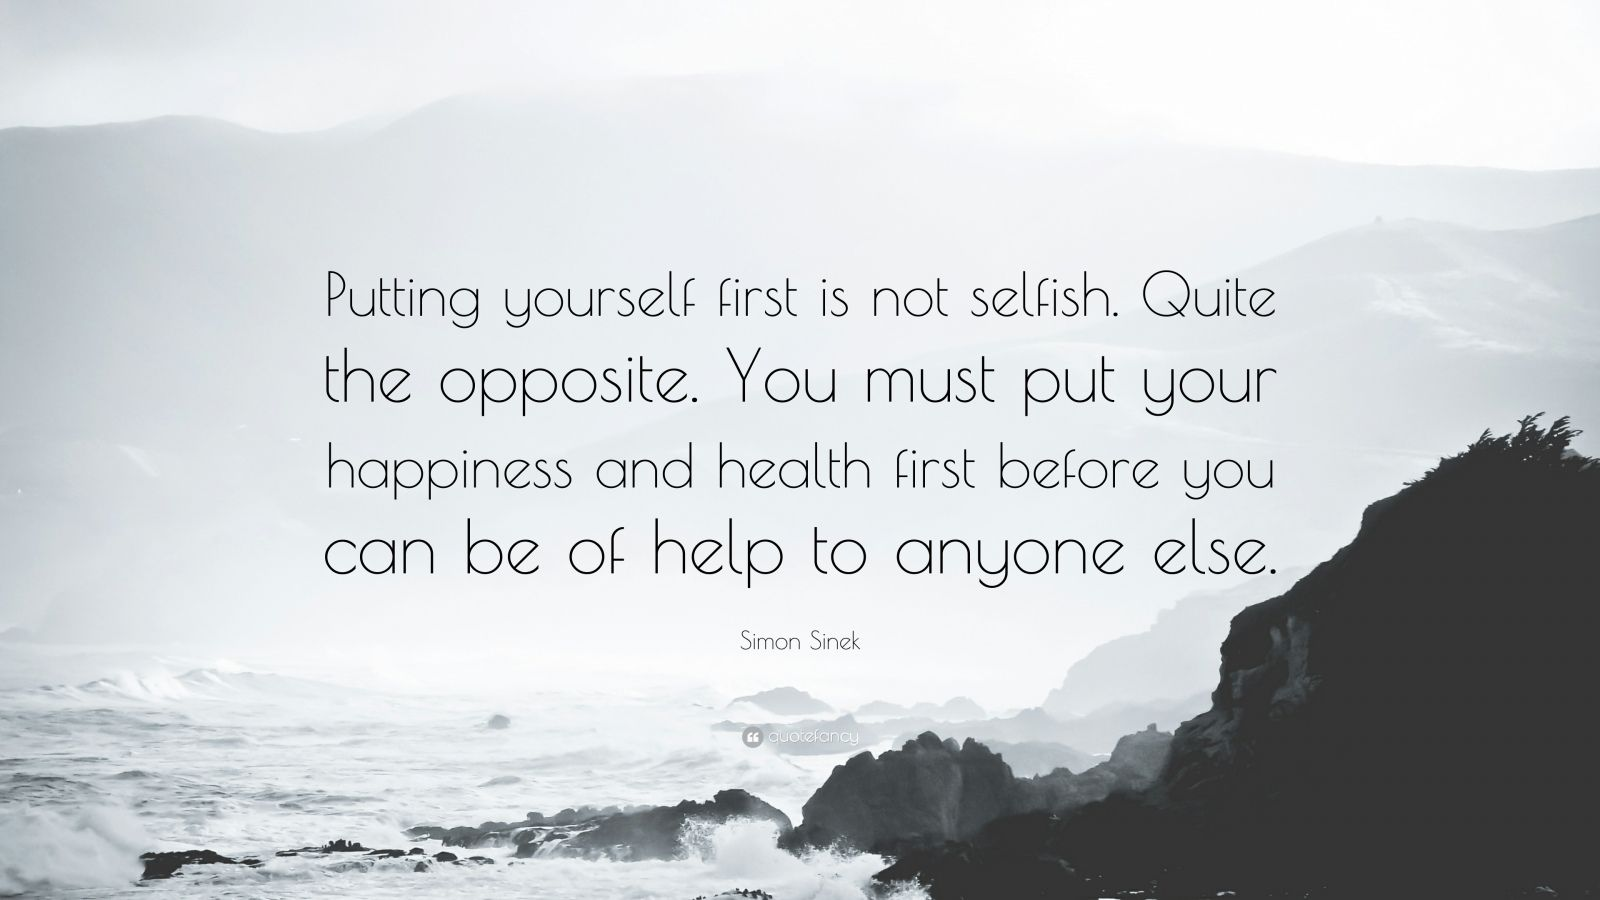 """Simon Sinek Quote: """"Putting yourself first is not selfish. Quite the opposite. You must put your happiness and health first before you can be of help to anyone else."""""""